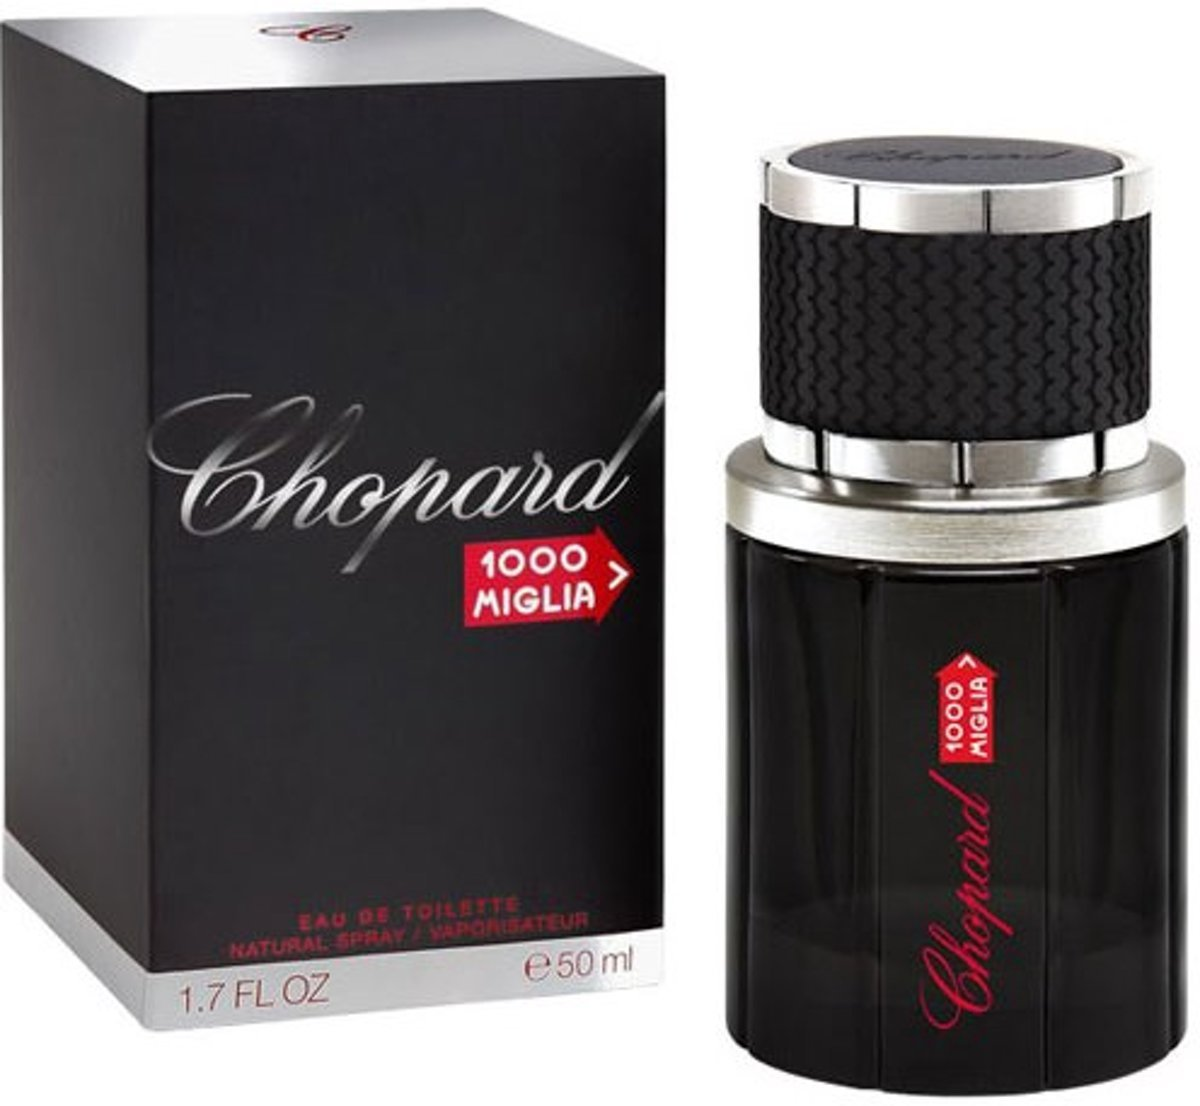 Chopard 1000 Miglia Edt Spray 50 ml